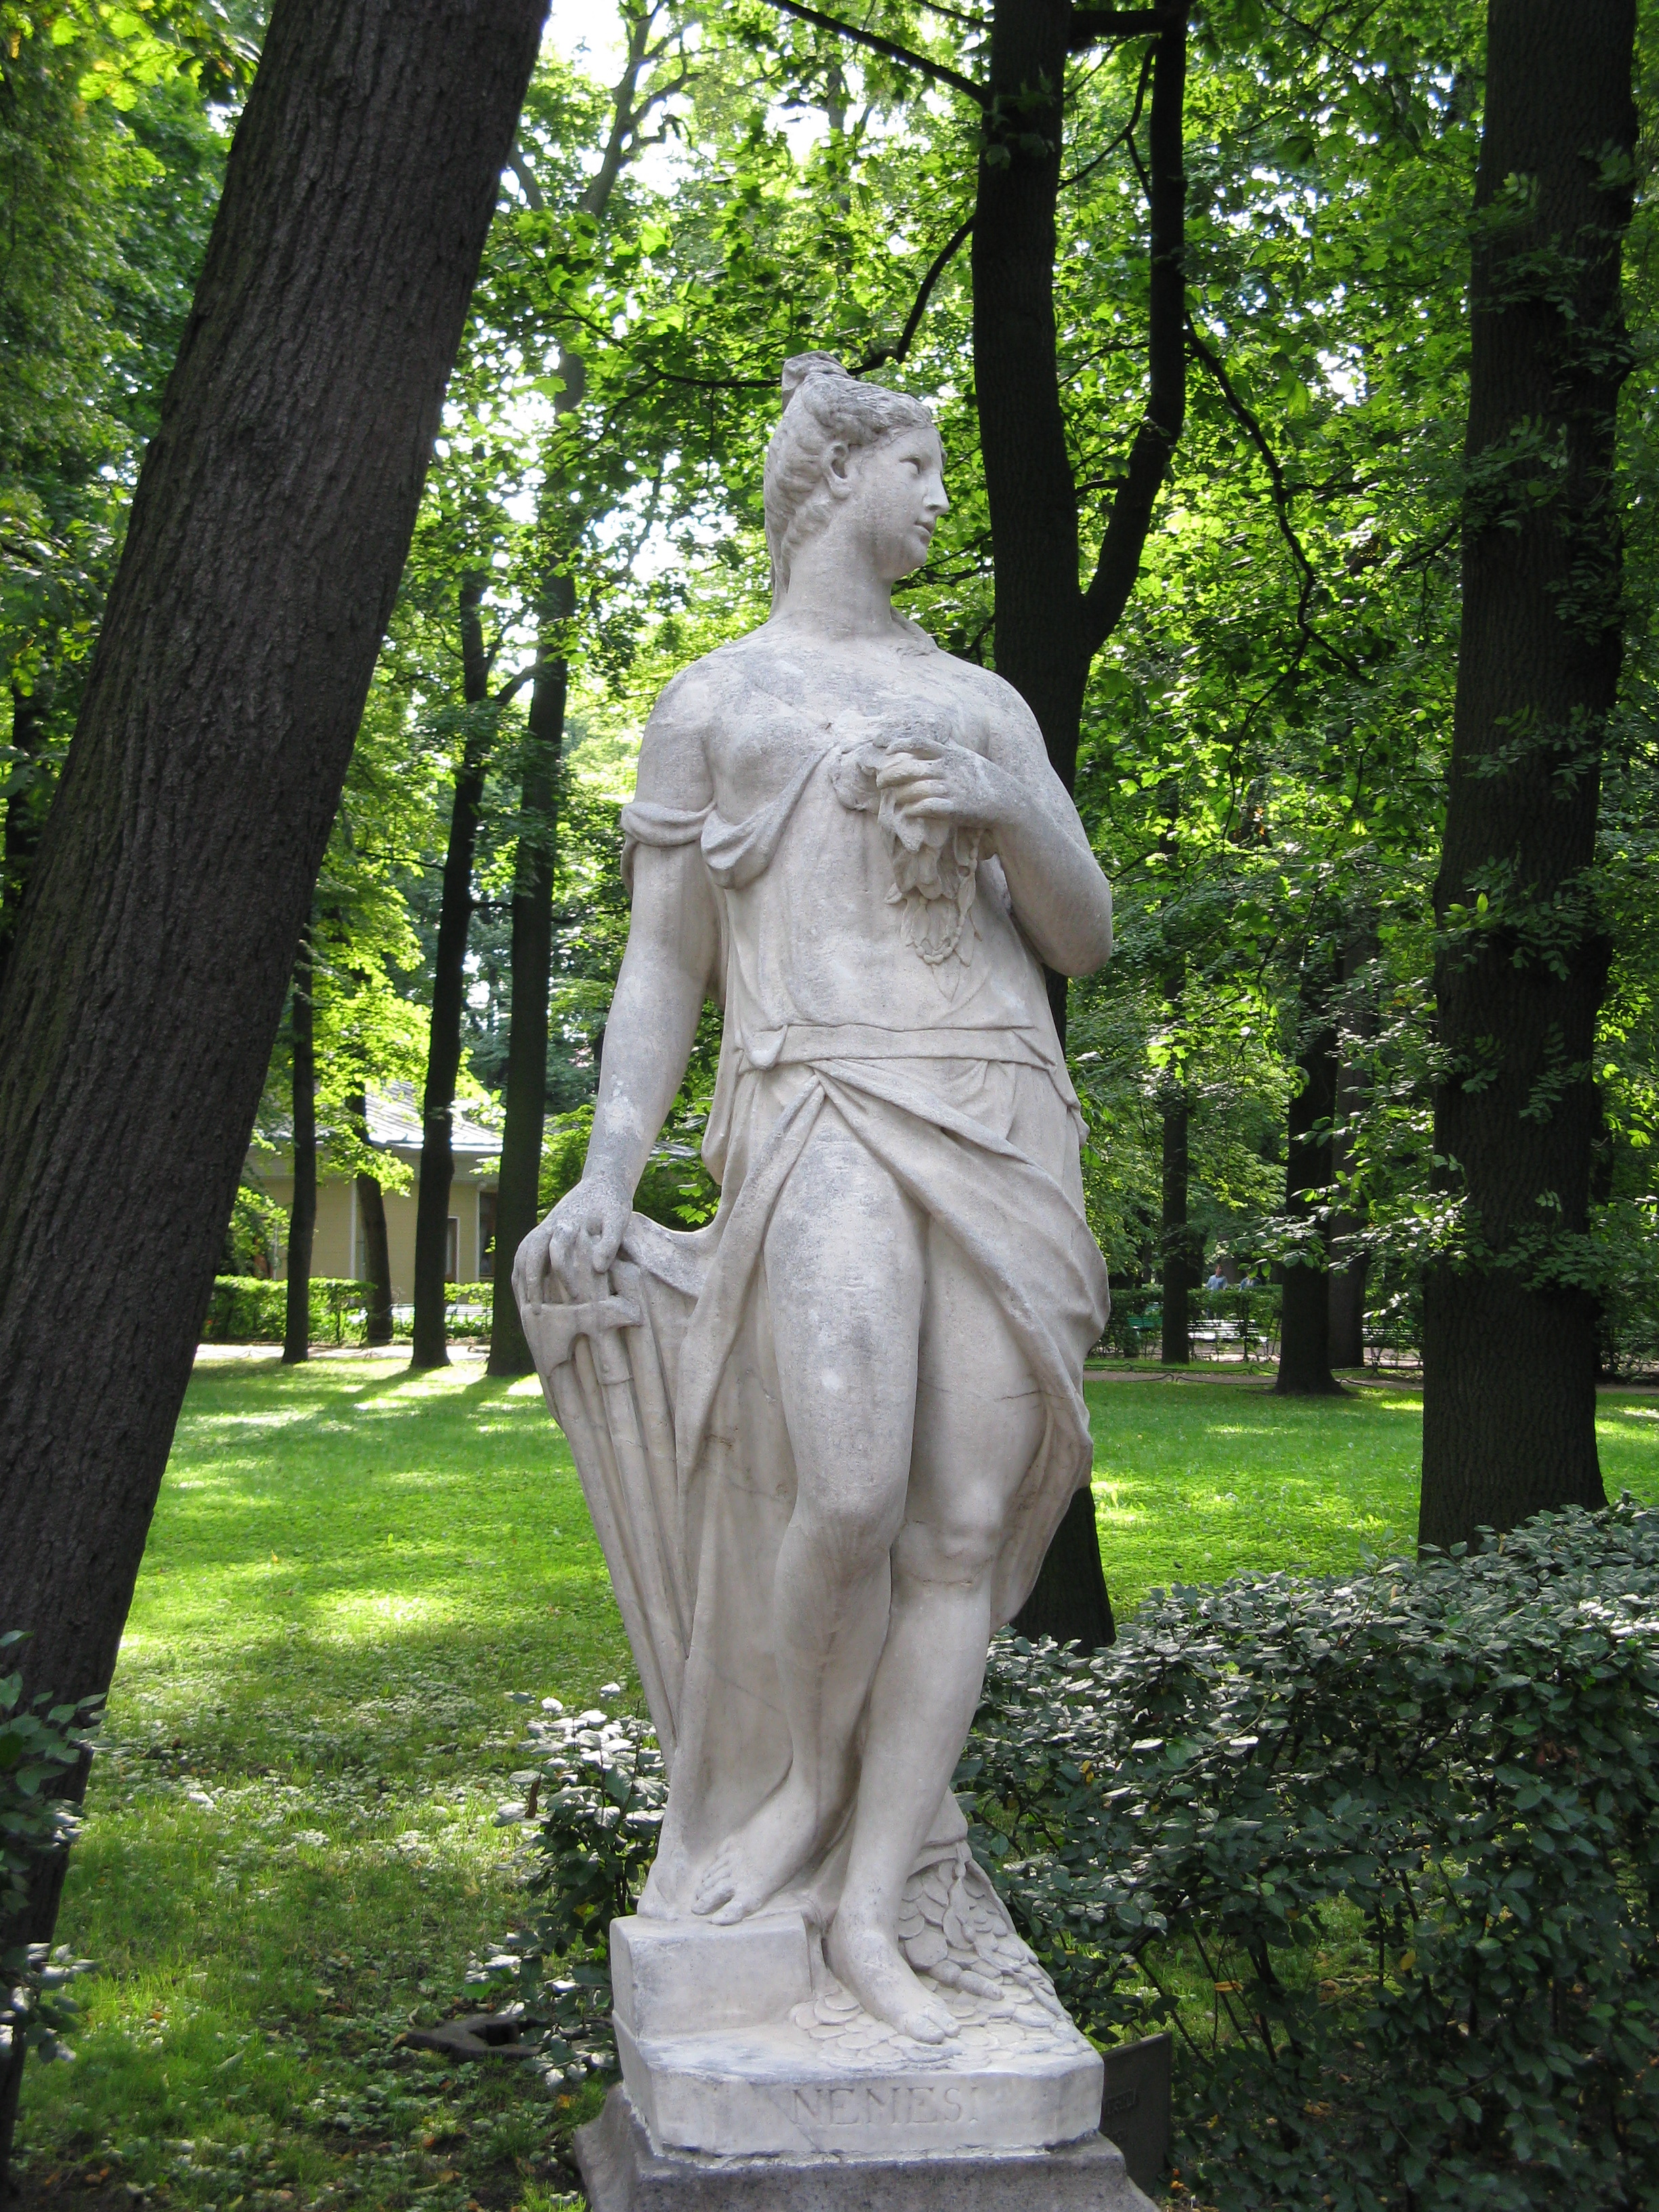 https://upload.wikimedia.org/wikipedia/commons/b/b8/Nemesis-Summer_Garden-Saint_Petersburg.jpg